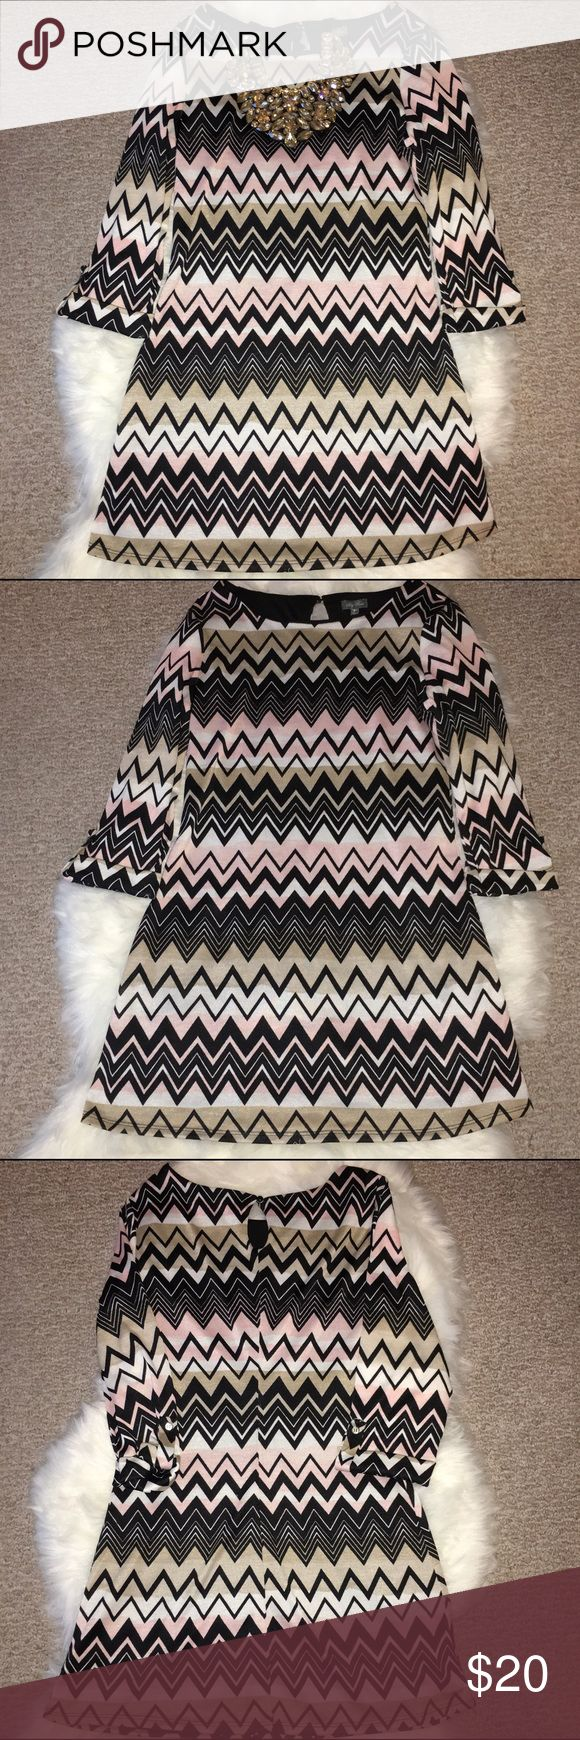 "NWT‼️ Lily Rose Zig-Zag Mini Dress - SZ: M NEW WITH TAGS. - This is a gorgeous long Sleeve mini dress by Lily Rose. Pink, cream & white with black zig-zag designs going across. Approx. 32"" inches long. Cotton. Simply beautiful. **Please ask all questions prior to purchasing.** Lily Rose Dresses Mini"